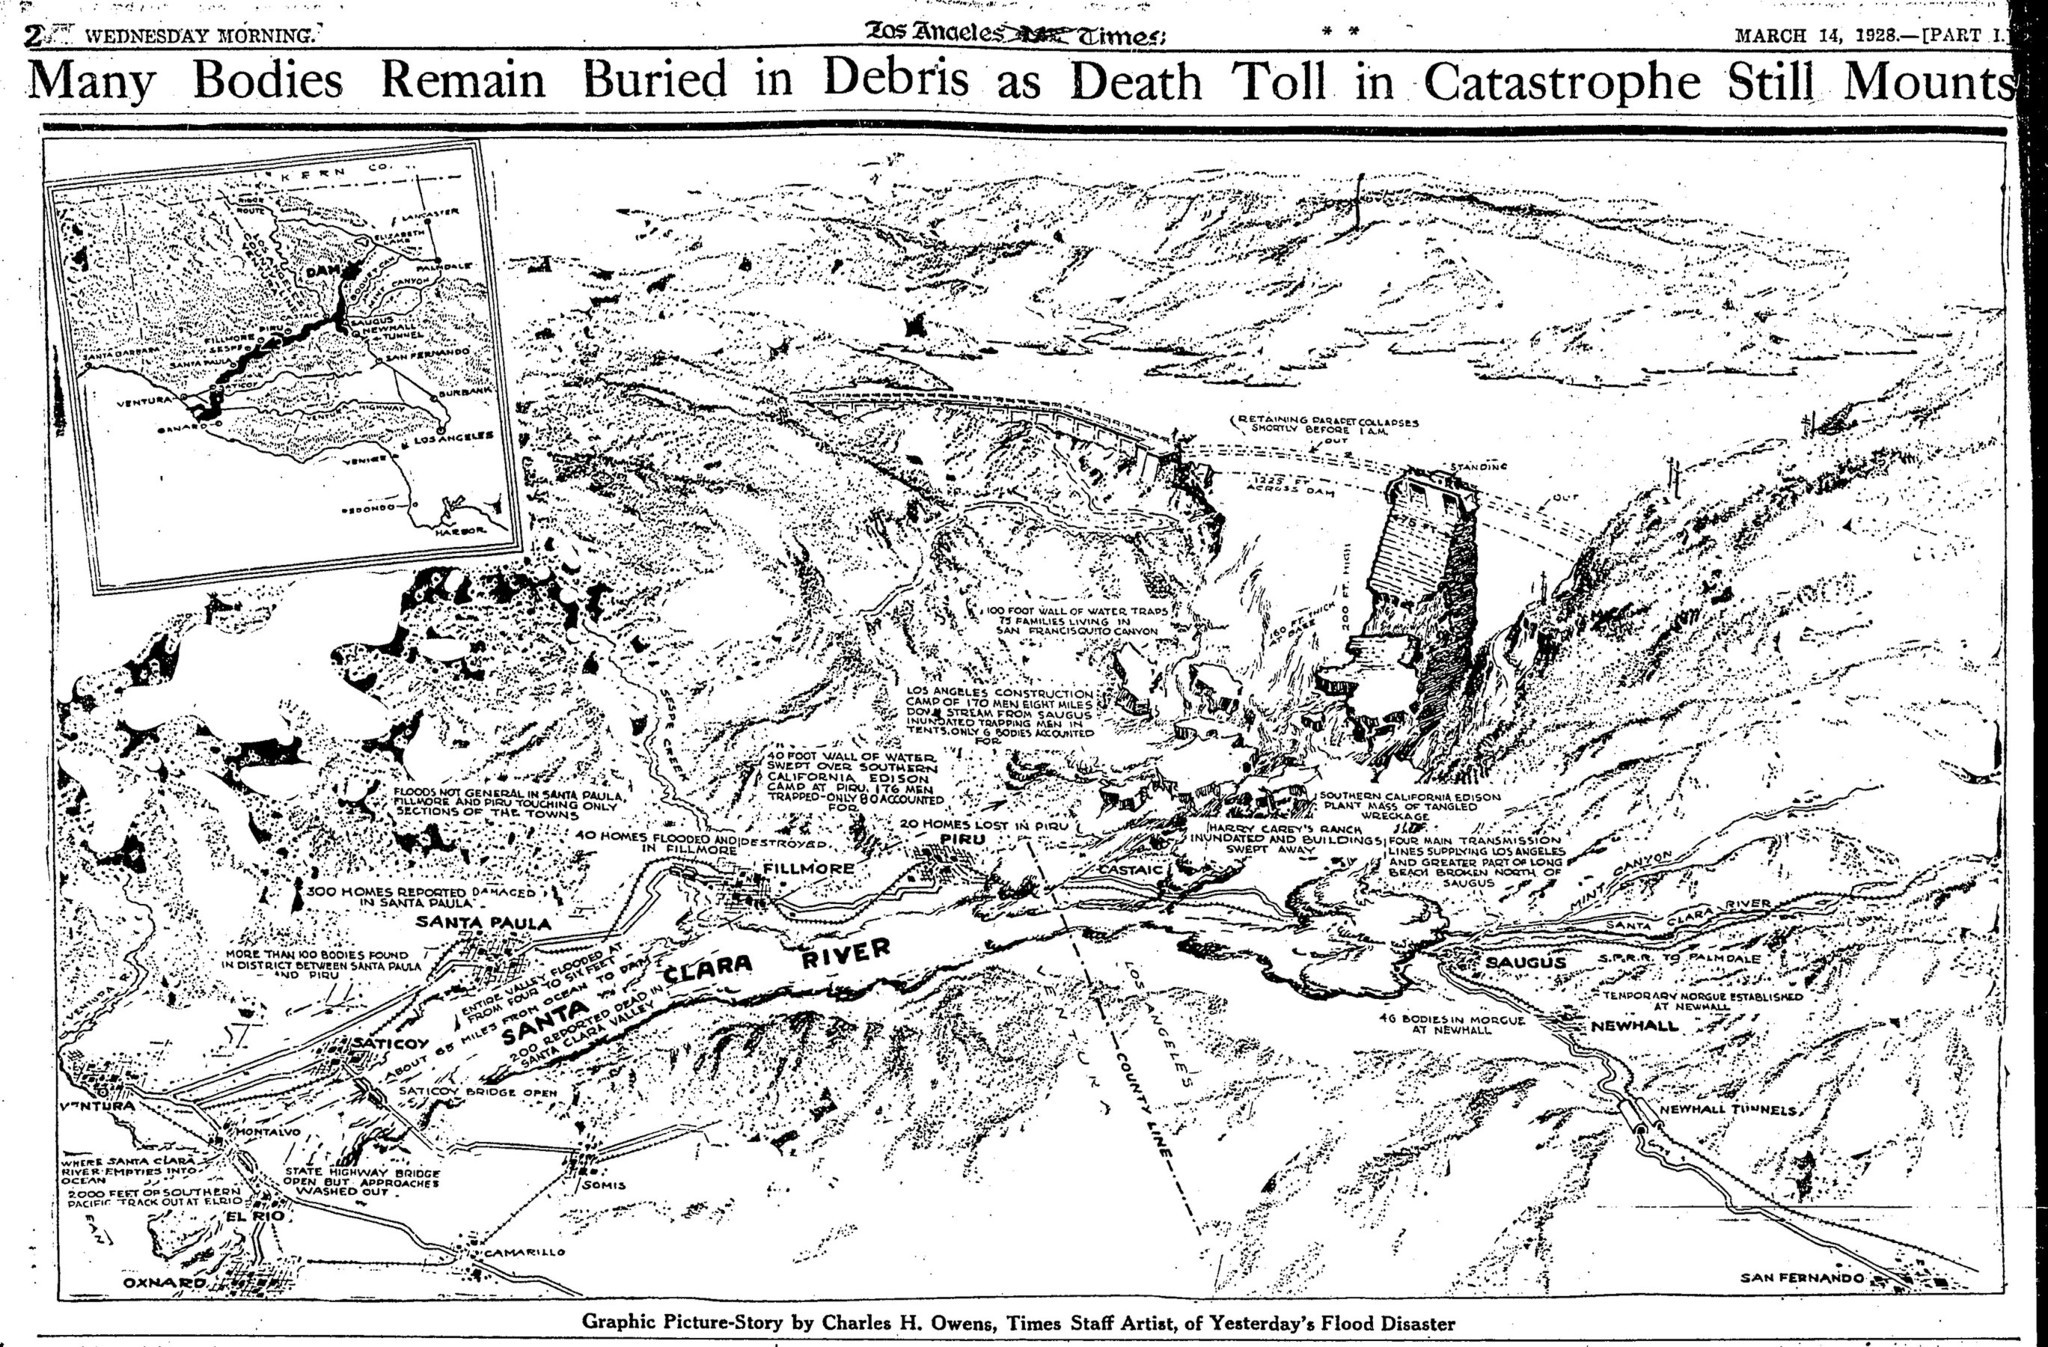 Graphic on the St. Francis Dam collapse published in the March 14, 1928, Los Angeles Times.